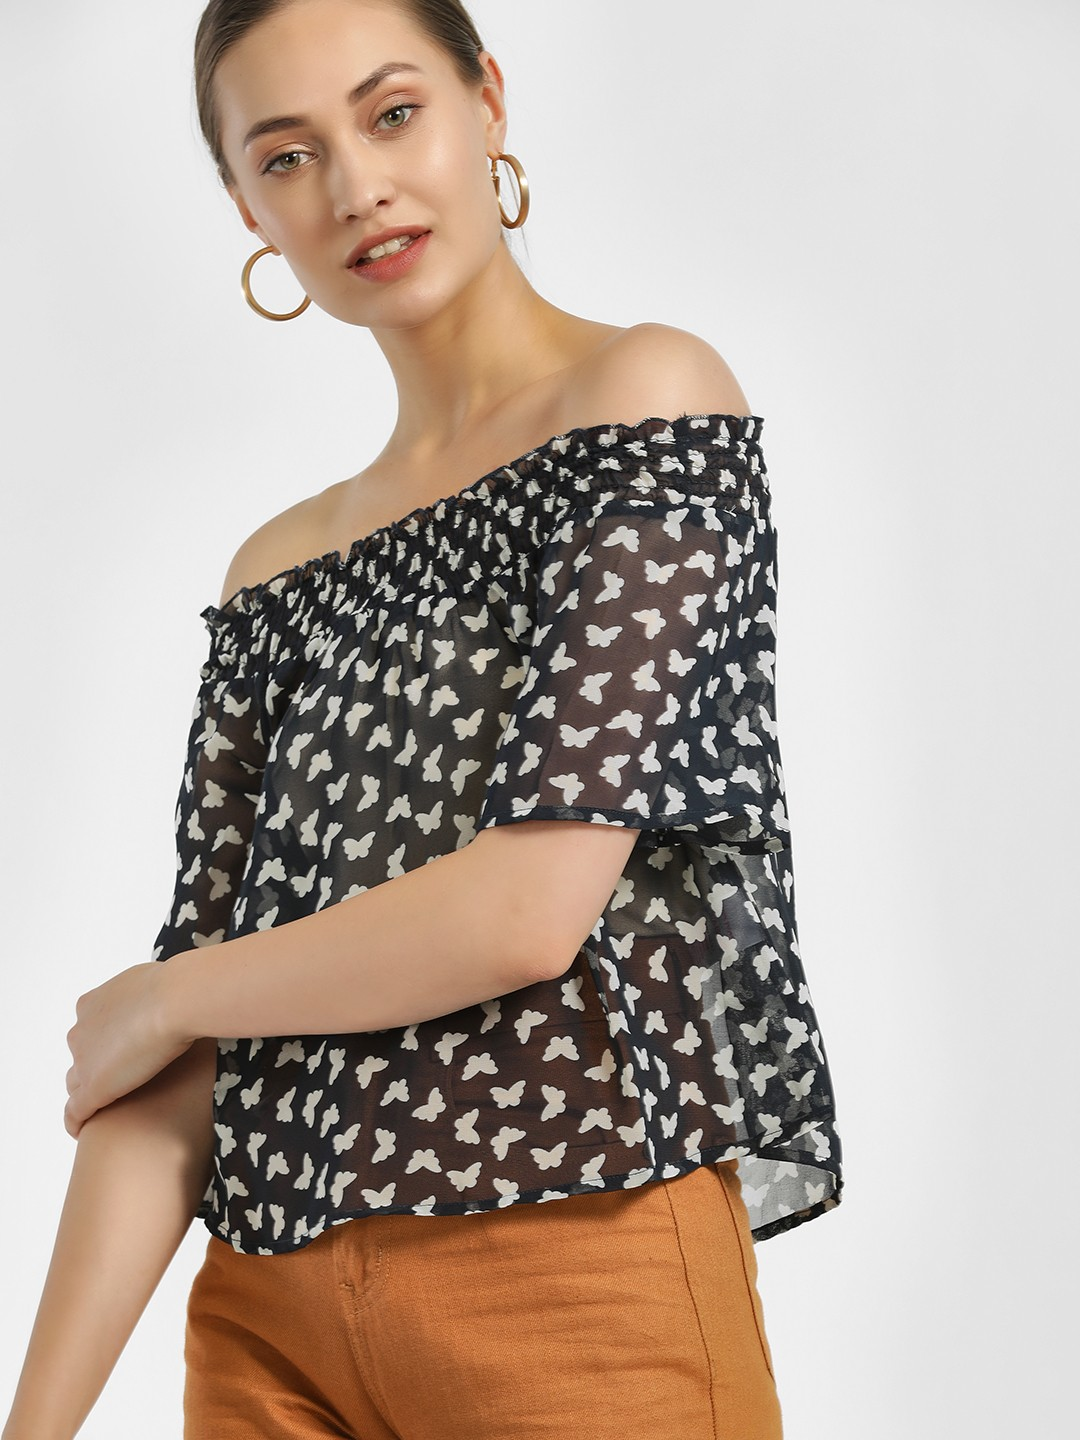 MIWAY Multi Butterfly Printed Bandeau Top 1